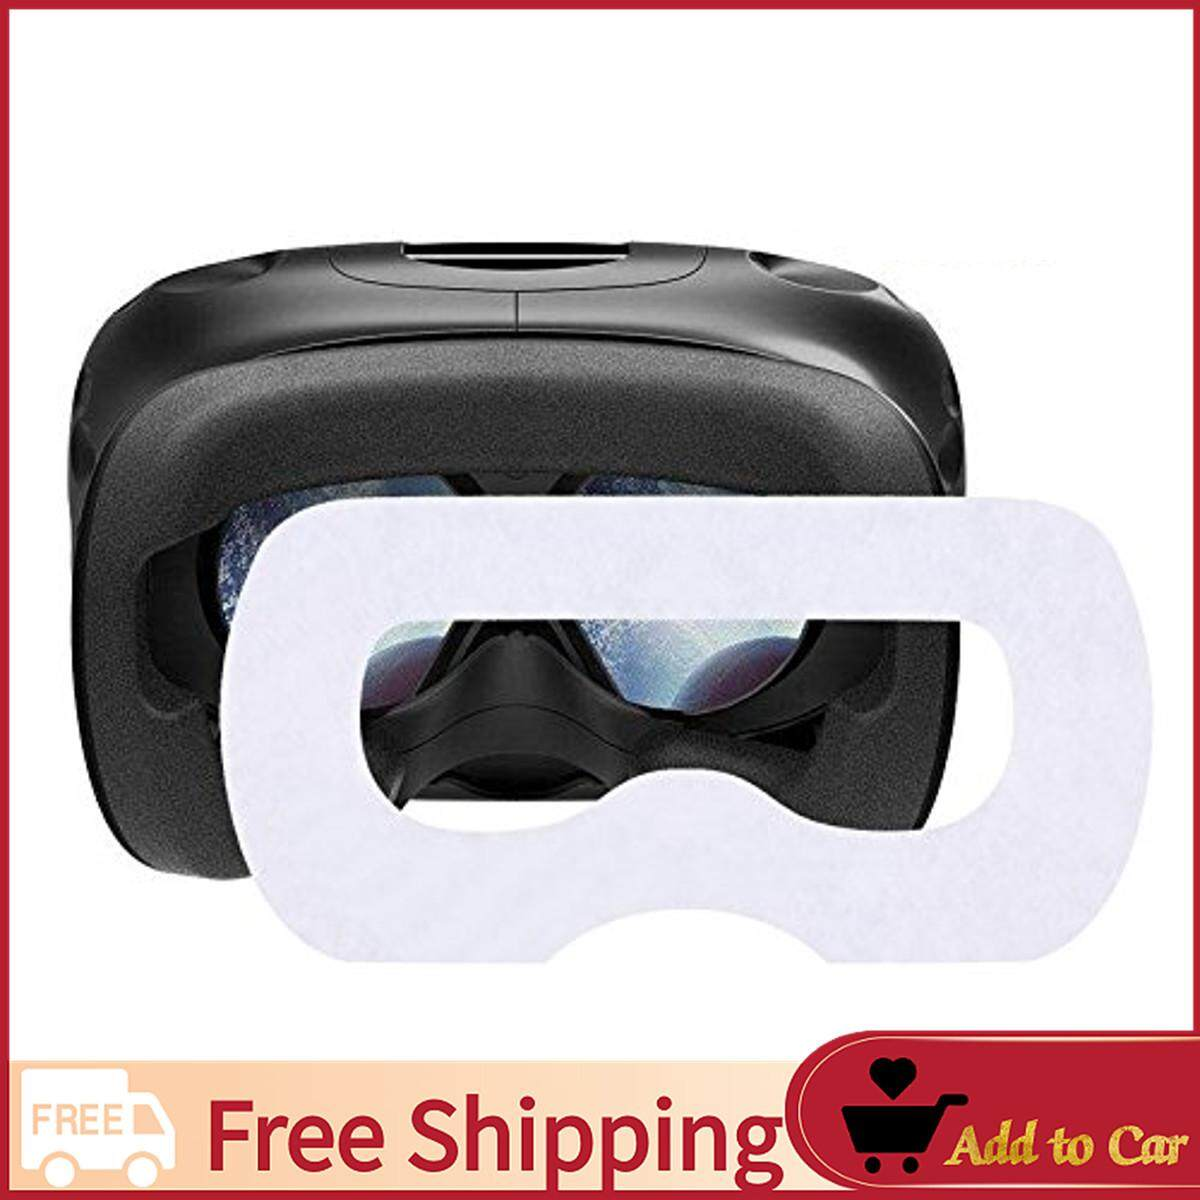 【Free Shipping】100Pcs Disposable Sanitary Facial Eye Mask Mats For HTC Vive VR Headset + Foam